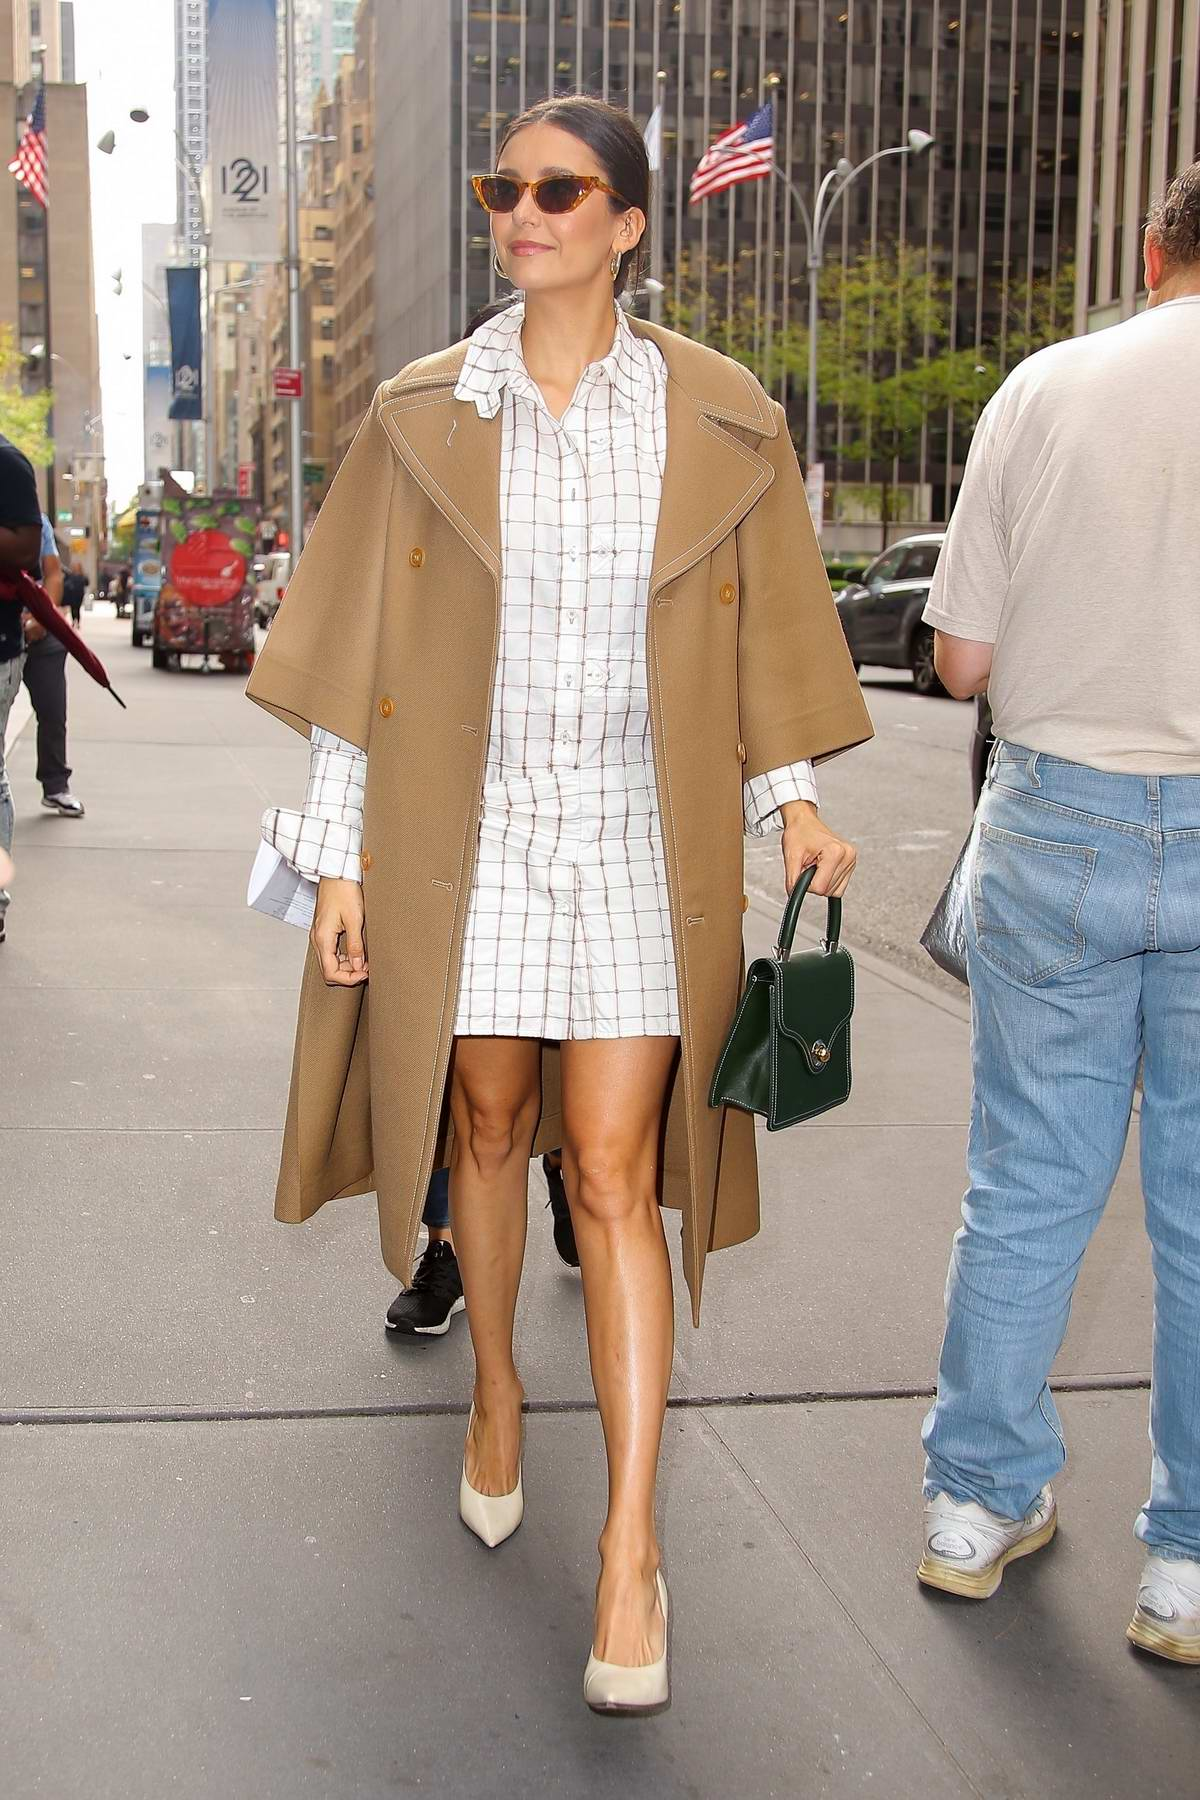 Nina Dobrev looks stylish in a checkered white dress and brown trench coat while visiting SiriusXM Studios in New York City